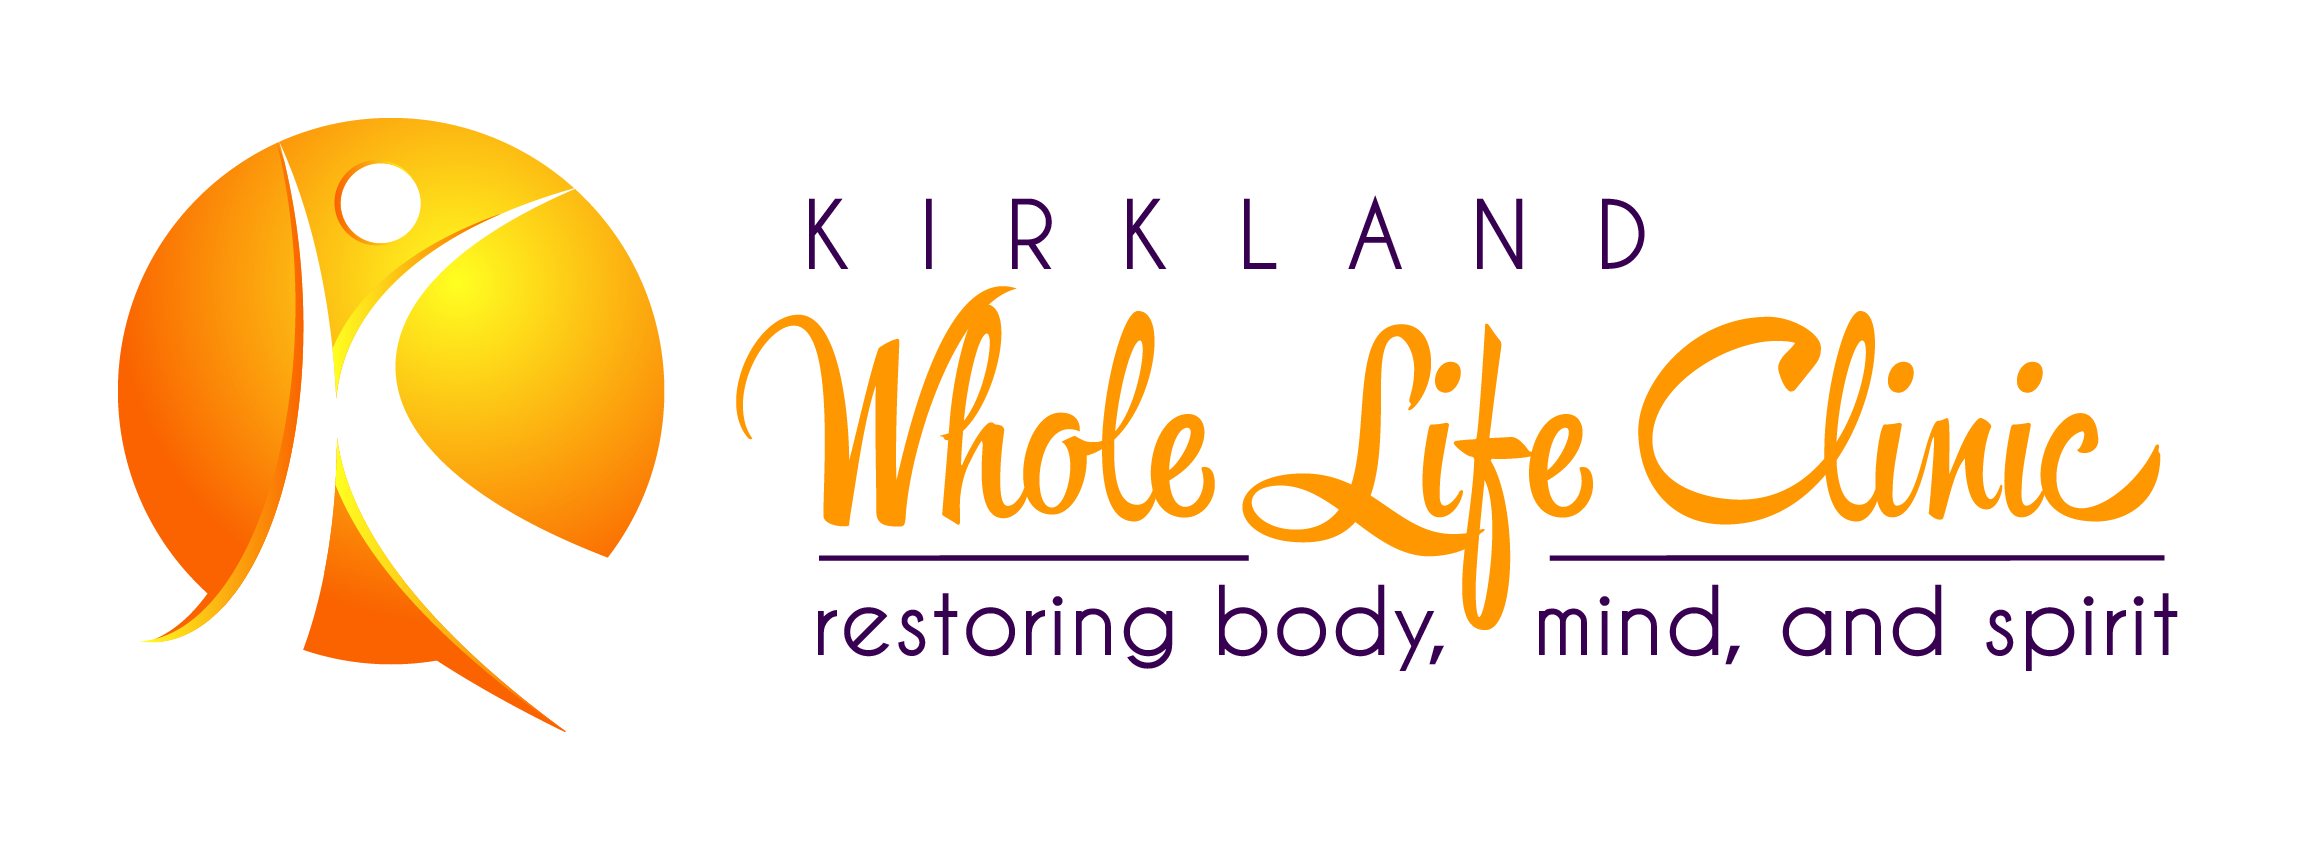 Great Massage at Kirkland Whole Life Clinic on Market St. | 1313 Market St Ste 3000, Kirkland, WA, 98033 | +1 (425) 285-9020